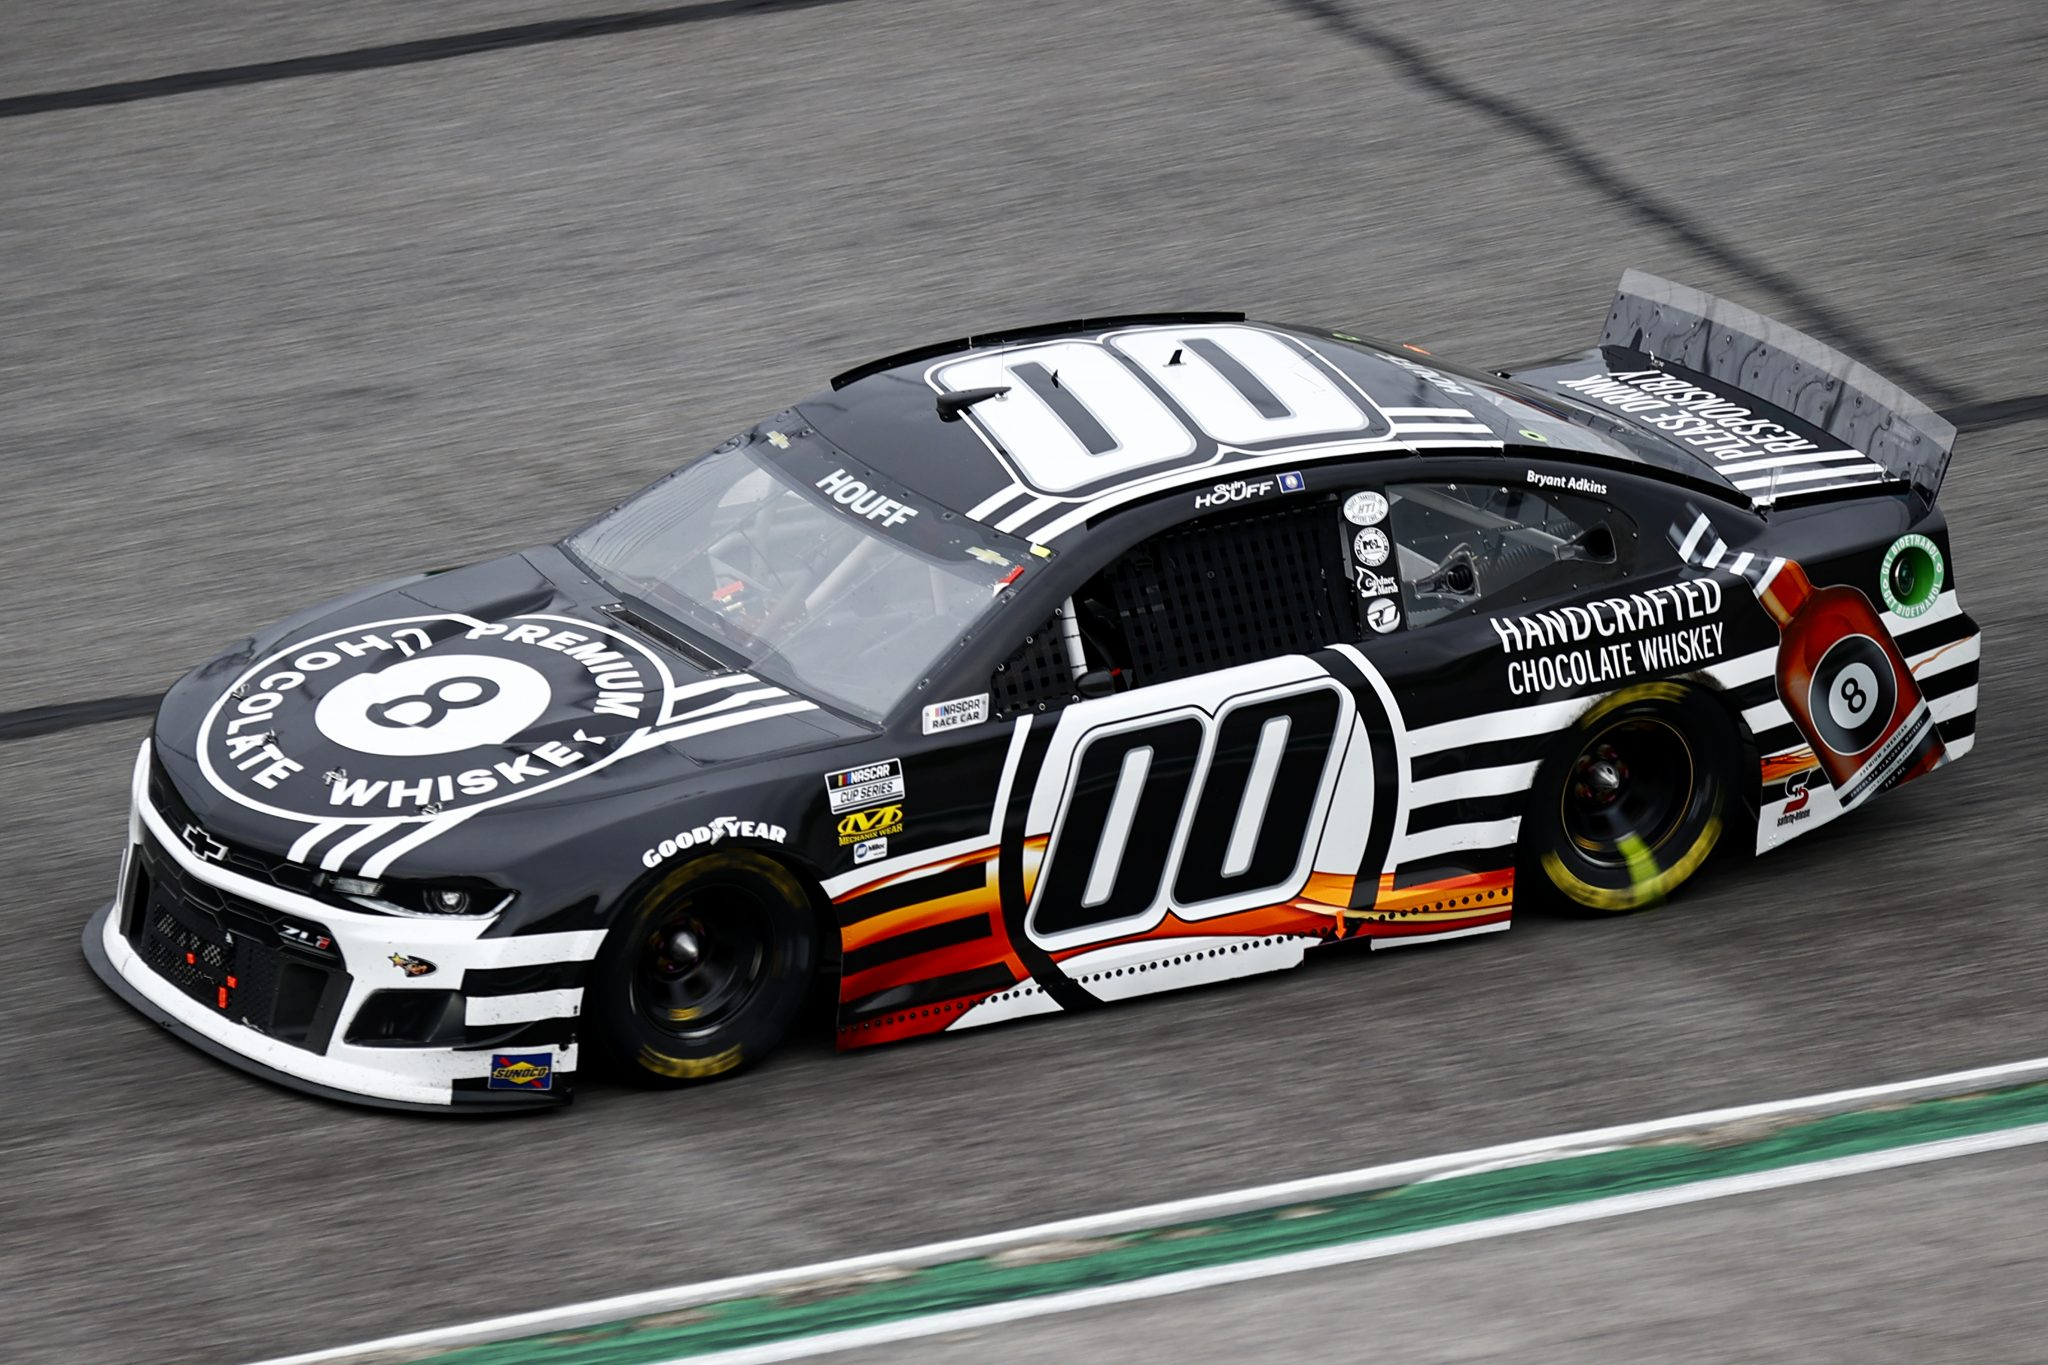 HAMPTON, GEORGIA - JULY 11: Quin Houff, driver of the #00 8 Ball Chocolate Whiskey Chevrolet, drives during the NASCAR Cup Series Quaker State 400 presented by Walmart at Atlanta Motor Speedway on July 11, 2021 in Hampton, Georgia. (Photo by Jared C. Tilton/Getty Images)   Getty Images